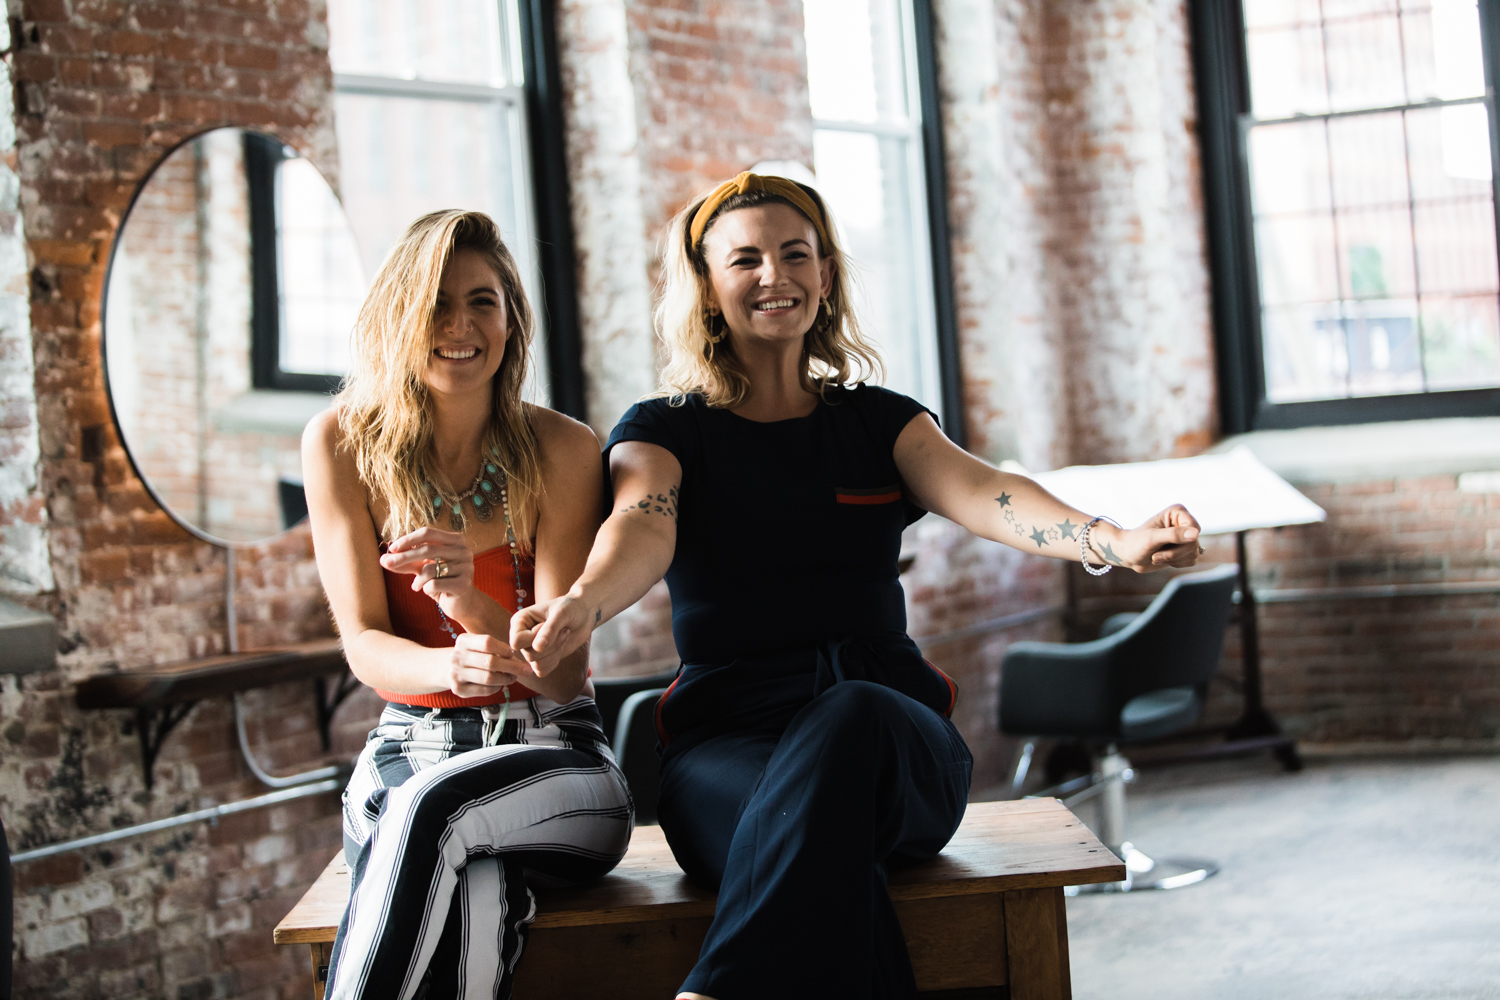 Owners of The Plan, Chelsea Falcetti (left) and Tiffany Duchesne (right) recently opened a sustainable salon in Holyoke, Massachusetts, which is on track to be one of the greenest cities in the country.